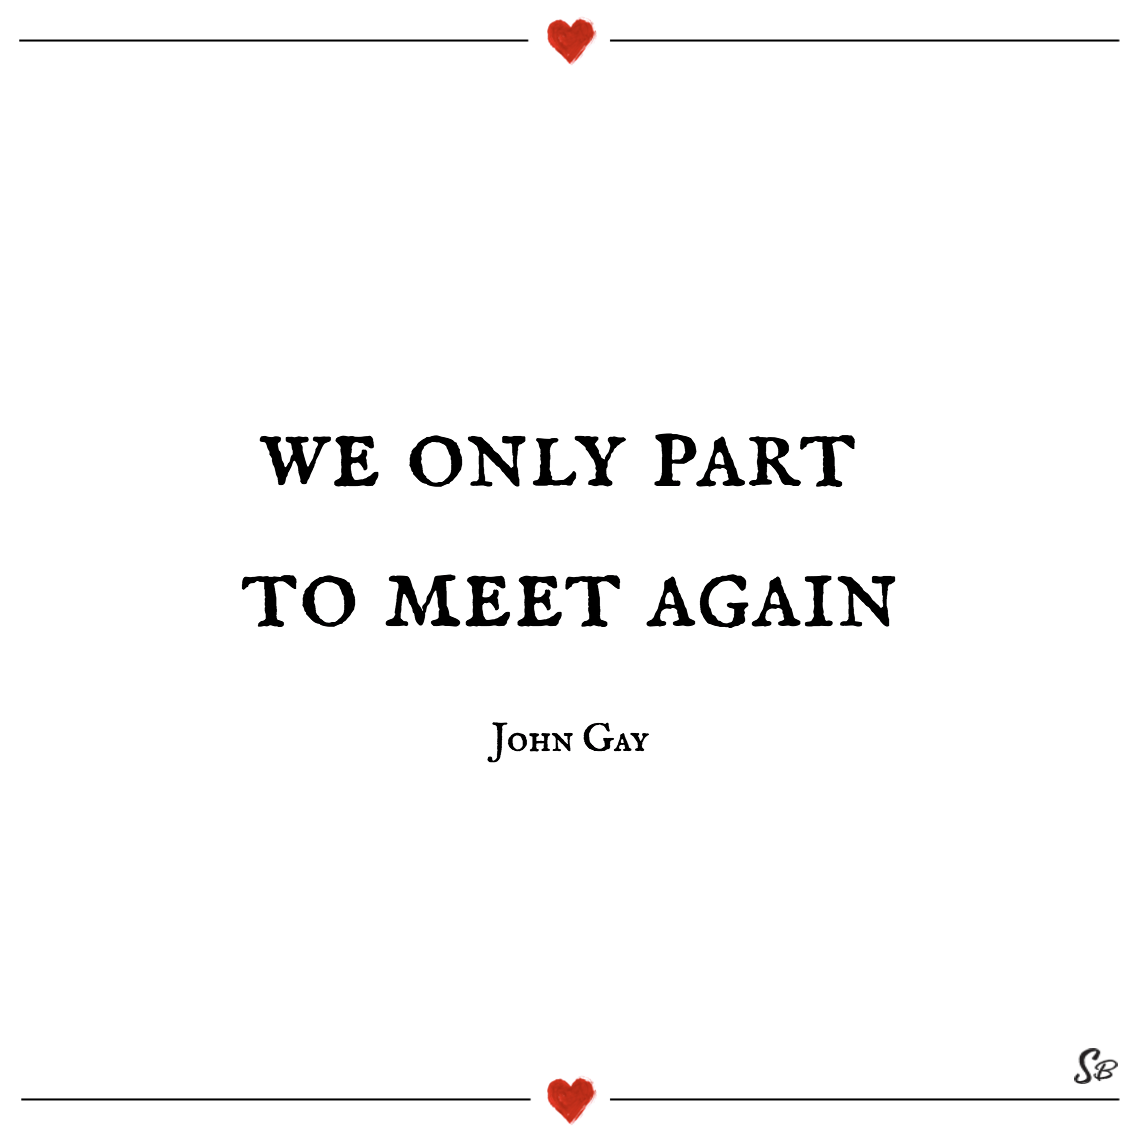 We only part to meet again john gay